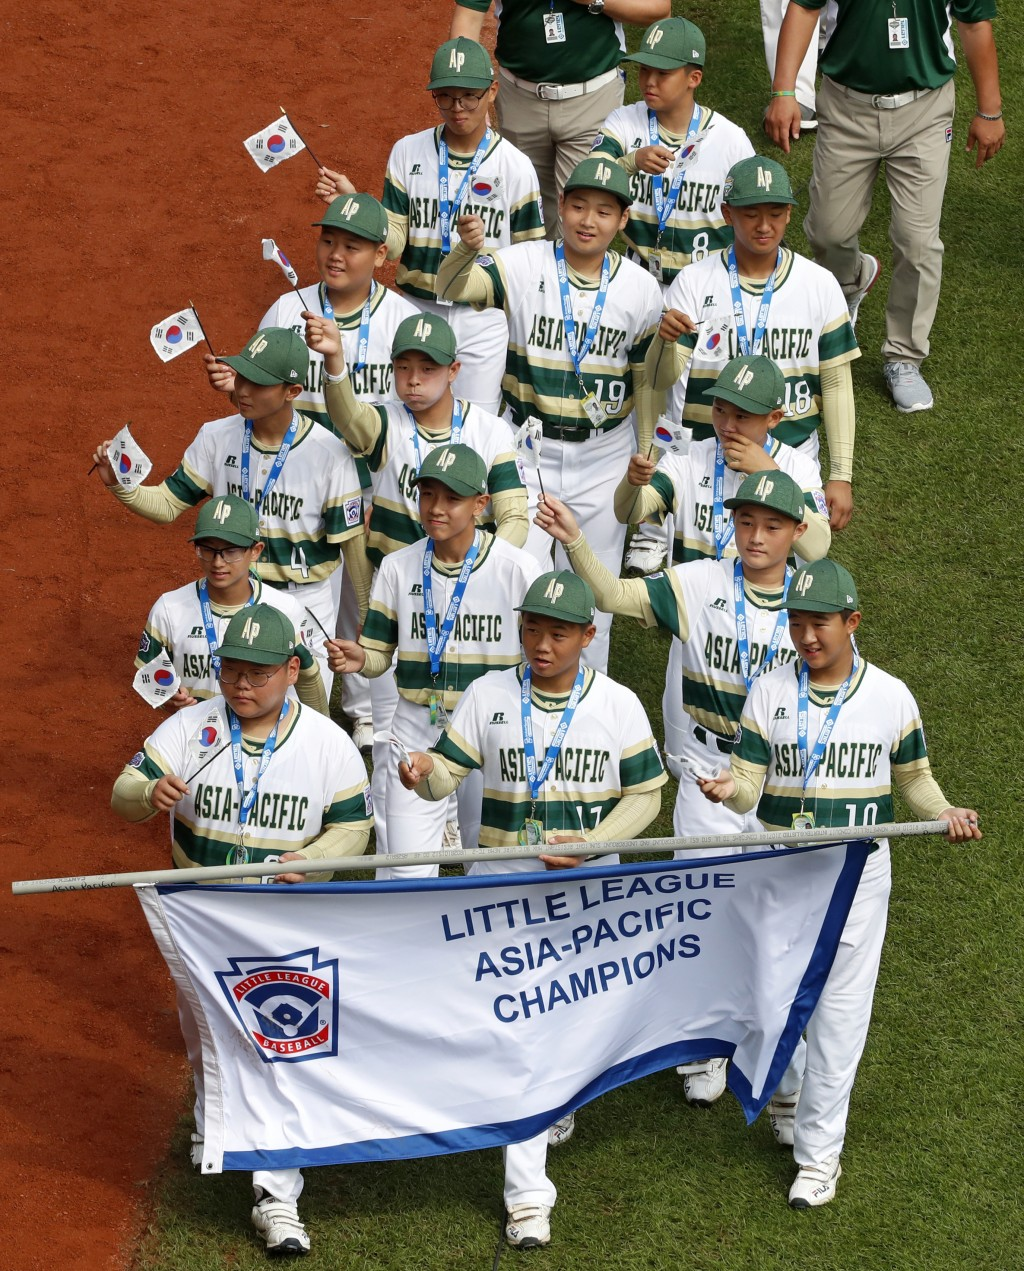 The Asia-Pacific Region Champion Little League team from Seoul, South Korea, participates in the opening ceremony of the 2018 Little League World Seri...